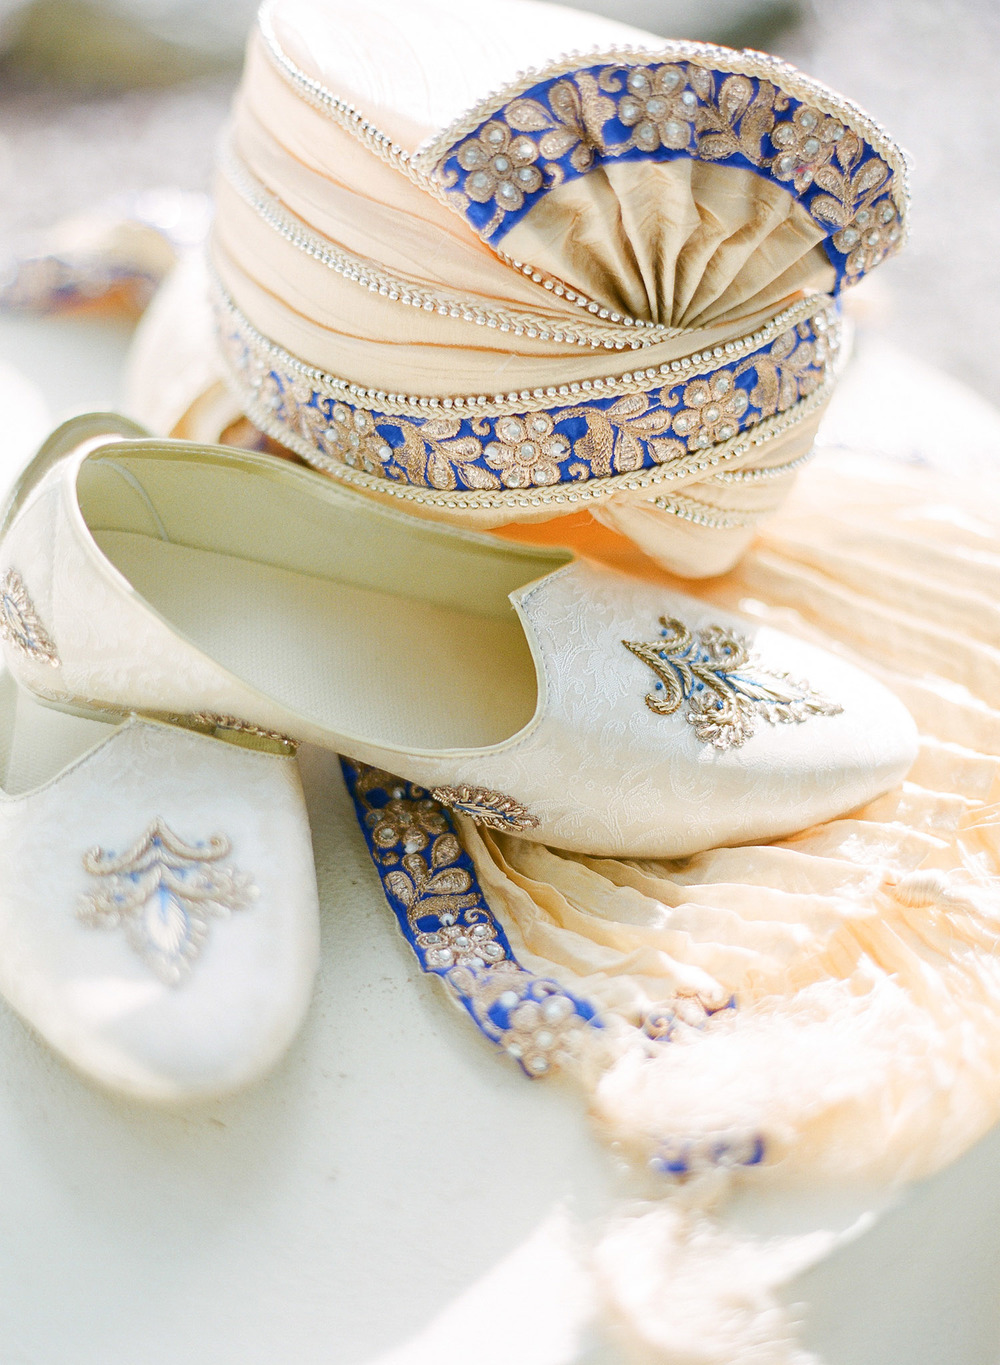 grooms attire for this hindu wedding ,   mojri   turban  Sherwani and a chudidar, while Destination wedding photographer Lexia Frank - a top indian wedding photographer for luxury indian weddings- photographs this luxury indian wedding in florida on film as she prefers the soft skin tones and vibrant colors for indian weddings in india and worldwide.  manish malhotra suneet varna